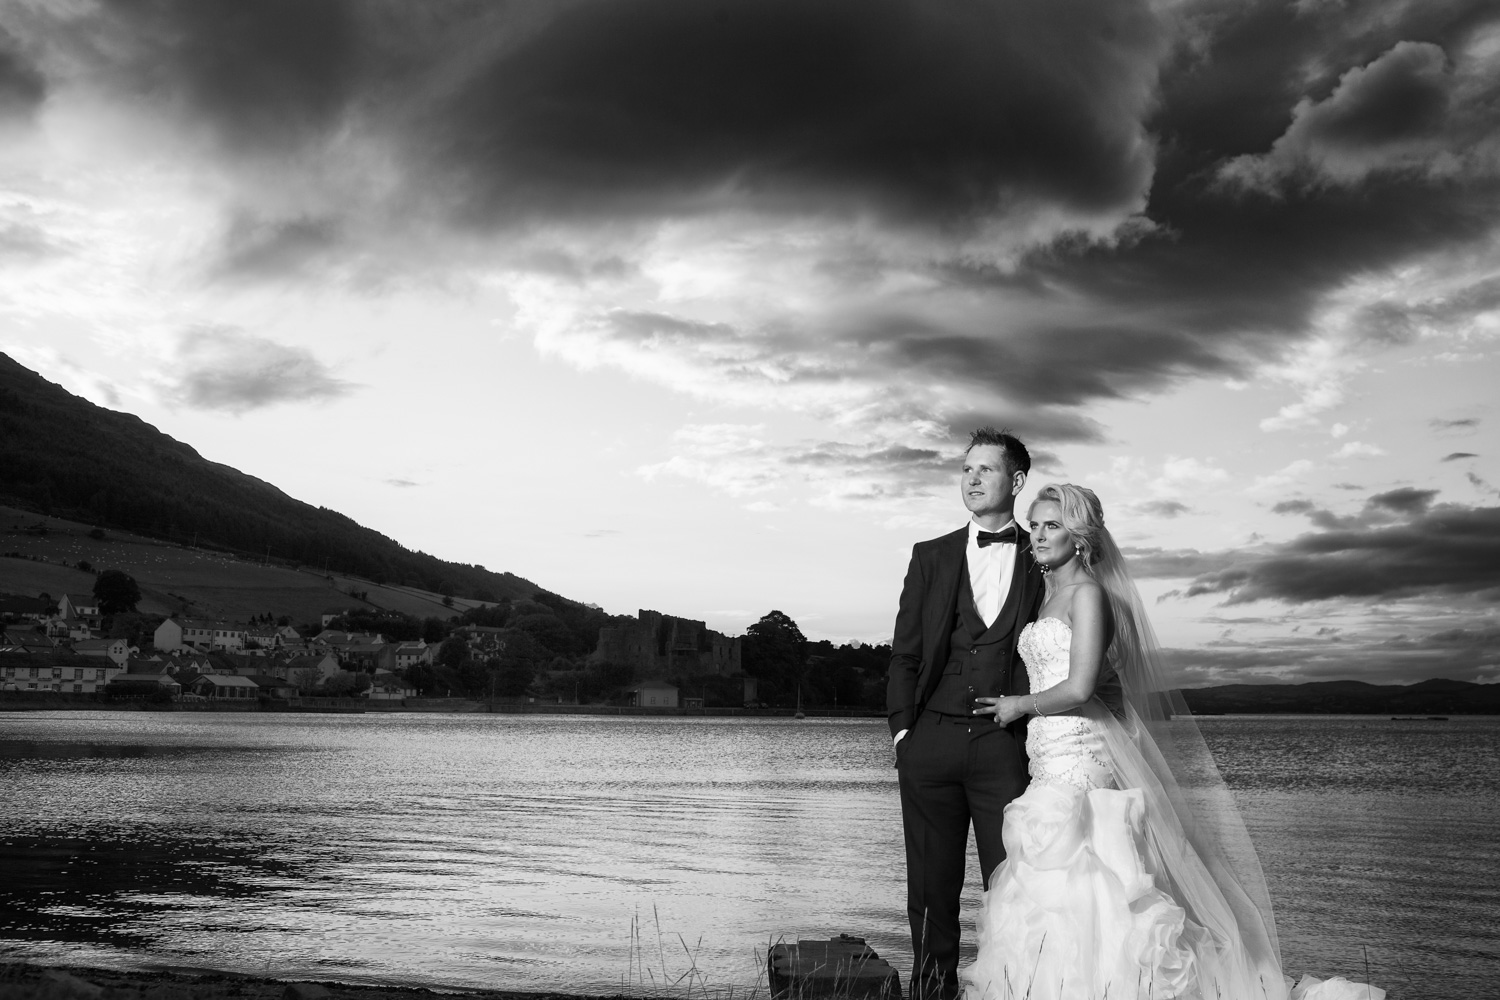 Mark_Barnes_wedding_photographer_Northern_Ireland_Wedding_photography_Carlingford_Four_Seasons_Wedding-50.jpg